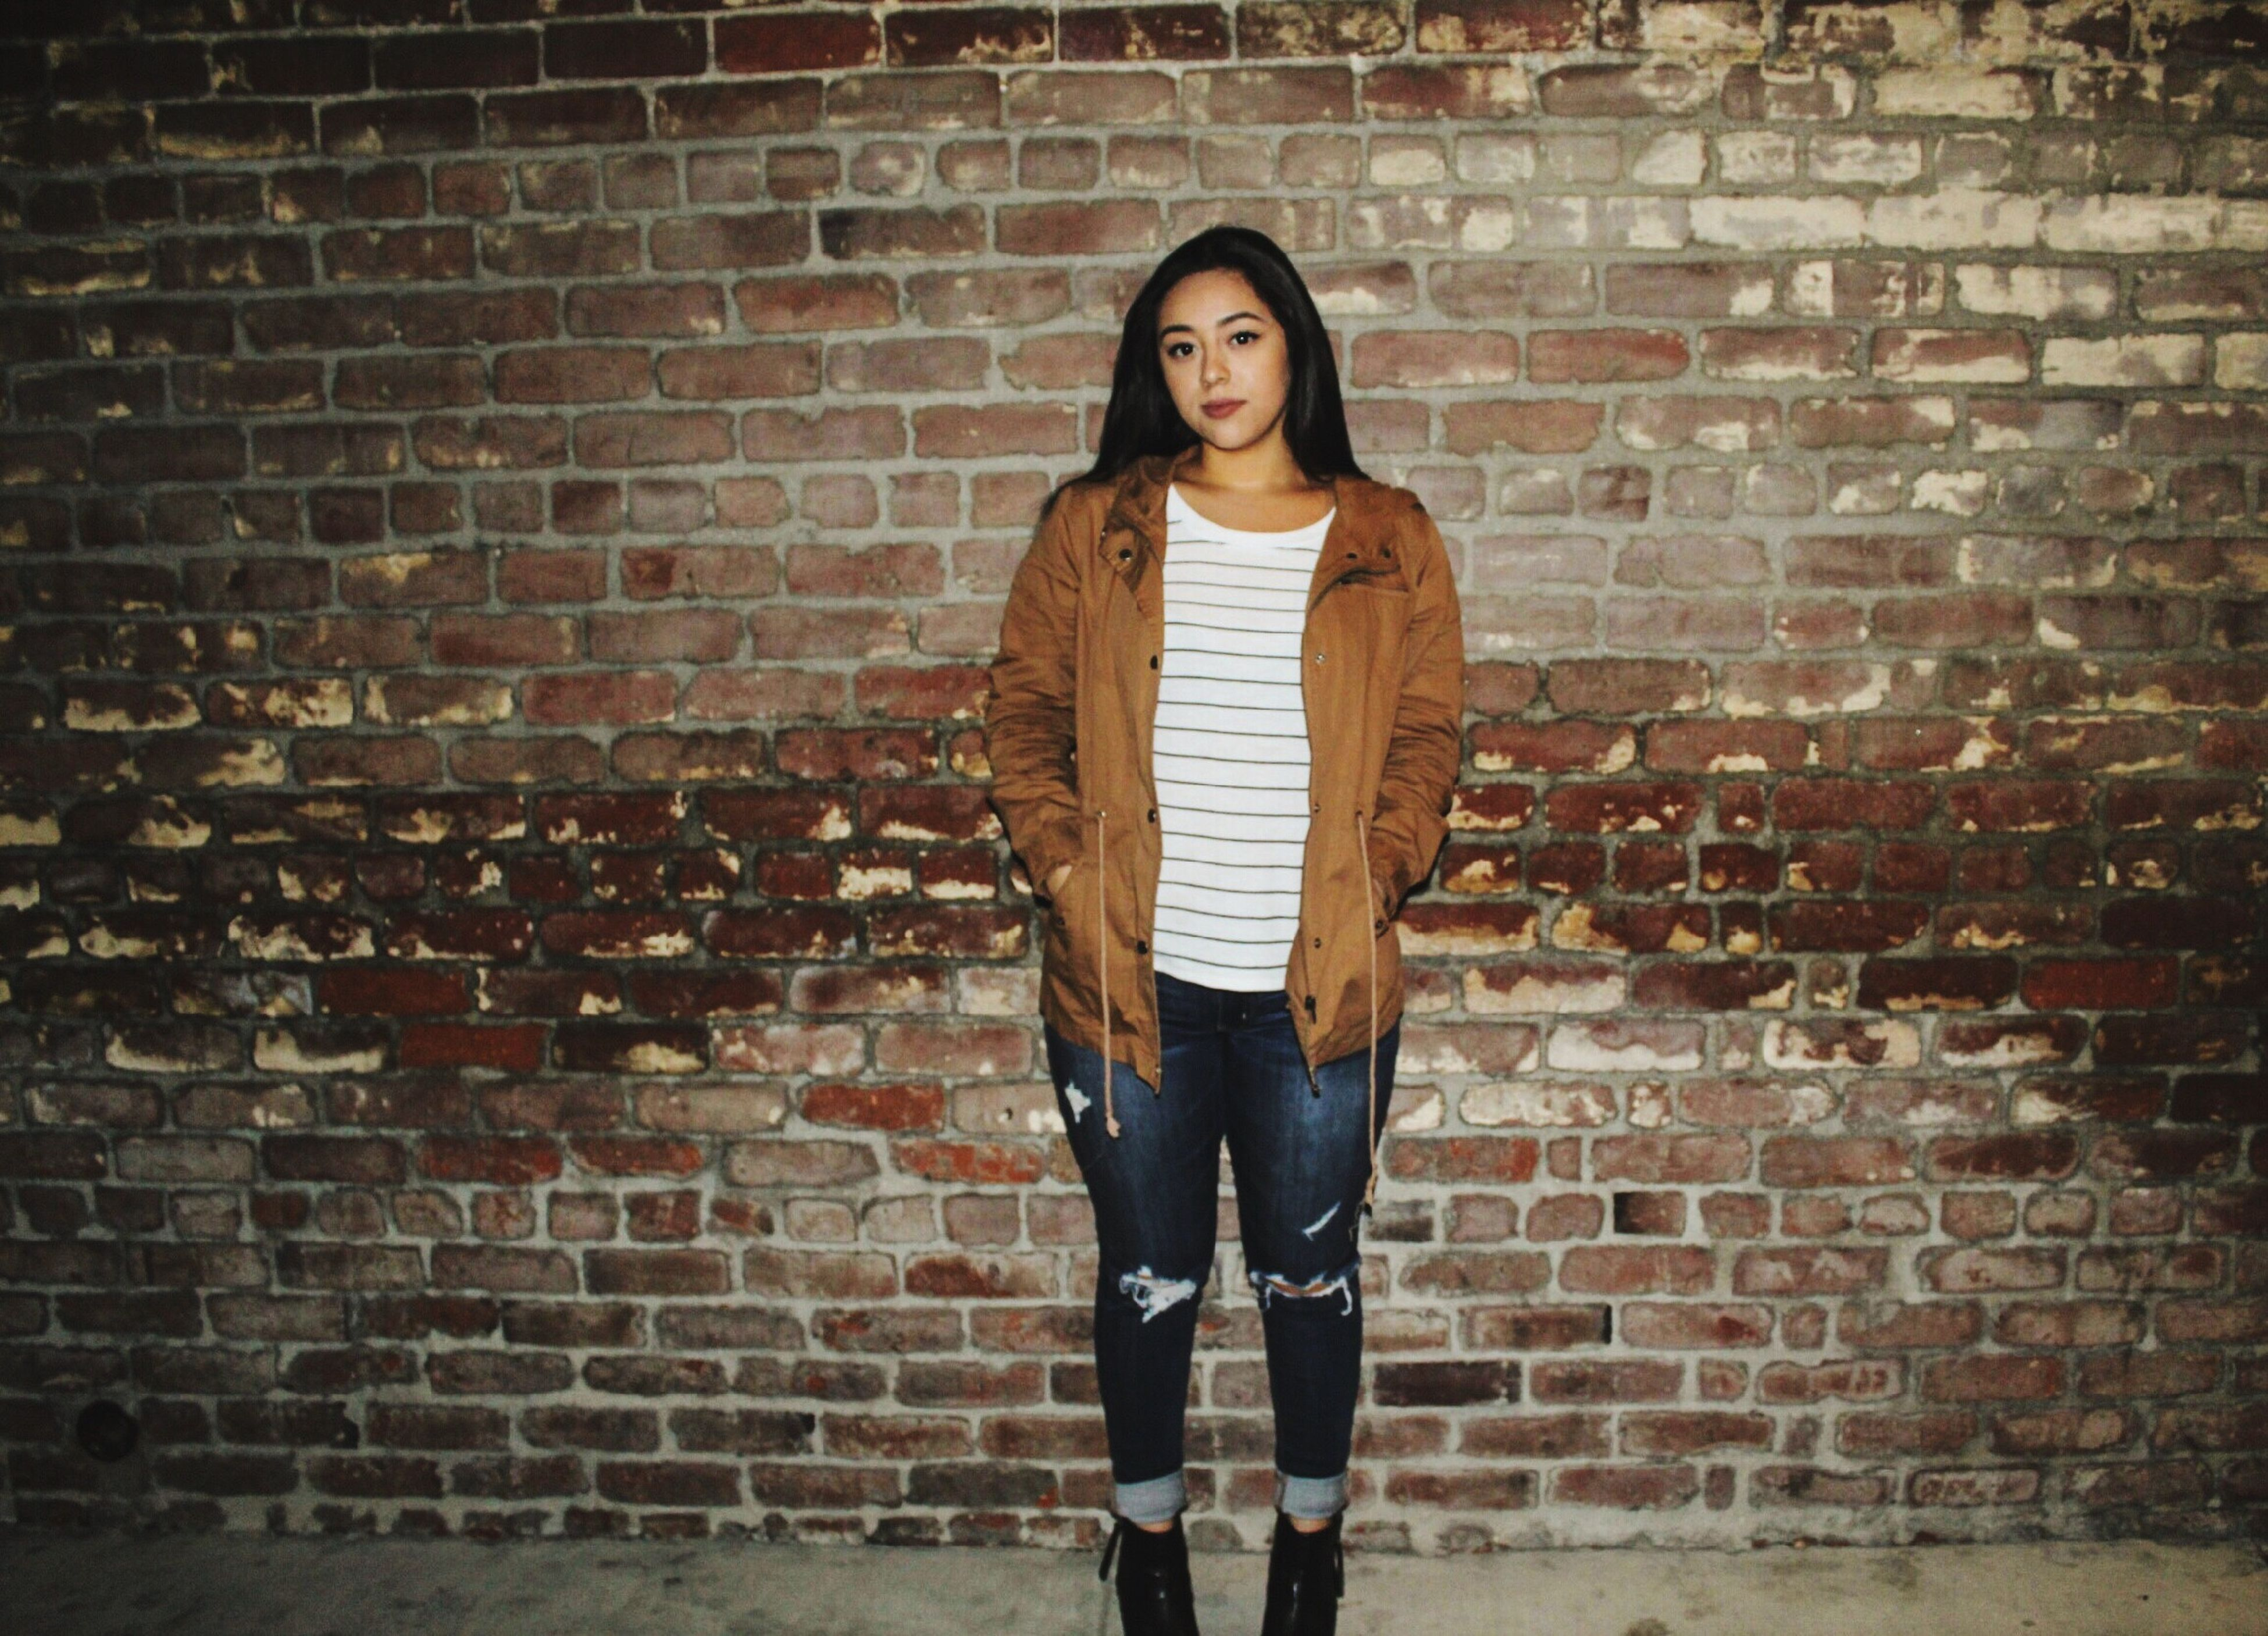 young adult, casual clothing, young women, front view, person, portrait, brick wall, looking at camera, standing, lifestyles, wall - building feature, architecture, built structure, building exterior, full length, leisure activity, fashion